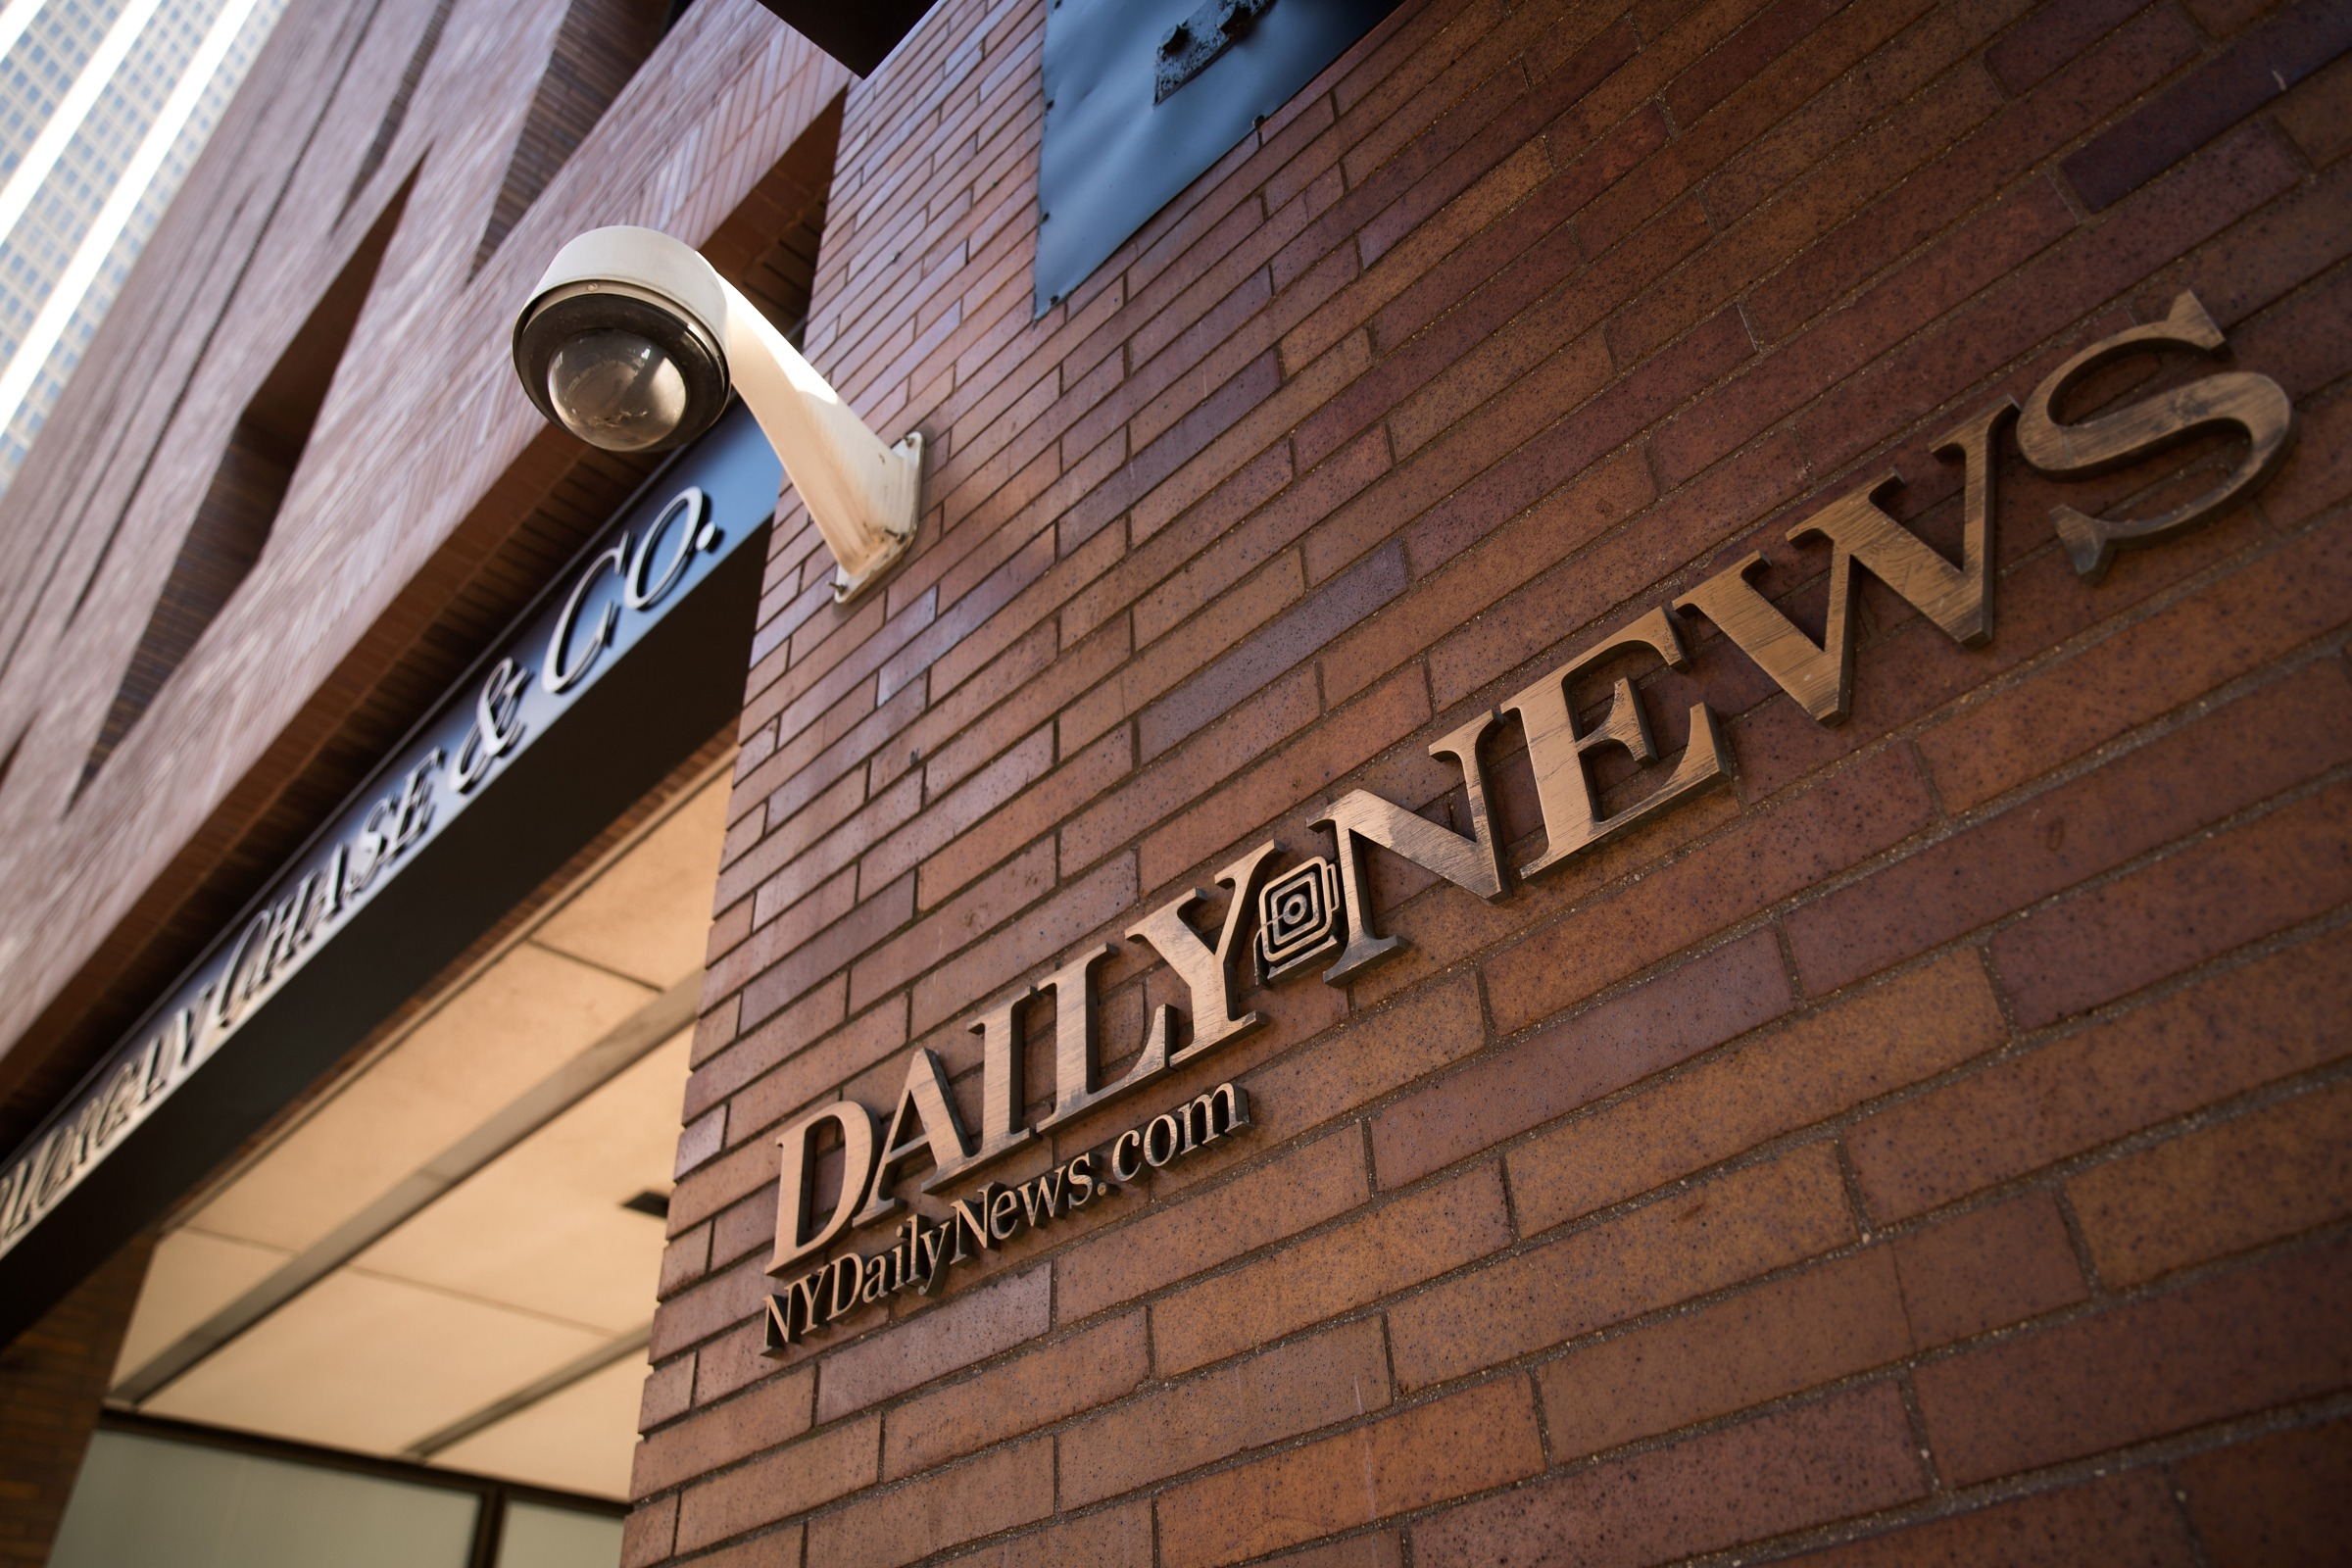 Signage for the New York Daily News is displayed on the facade of their Broad Street office, September 5, 2017 in New York City. Tronc, the publisher of the Chicago Tribune and The Los Angeles Times newspapers, announced on Monday that is had purchased The New York Daily News. Previously owned by Mort Zuckerman, Tronc paid one dollar in cash plus the assumption of liabilities to purchase the nearly 100-year old tabloid newspaper.